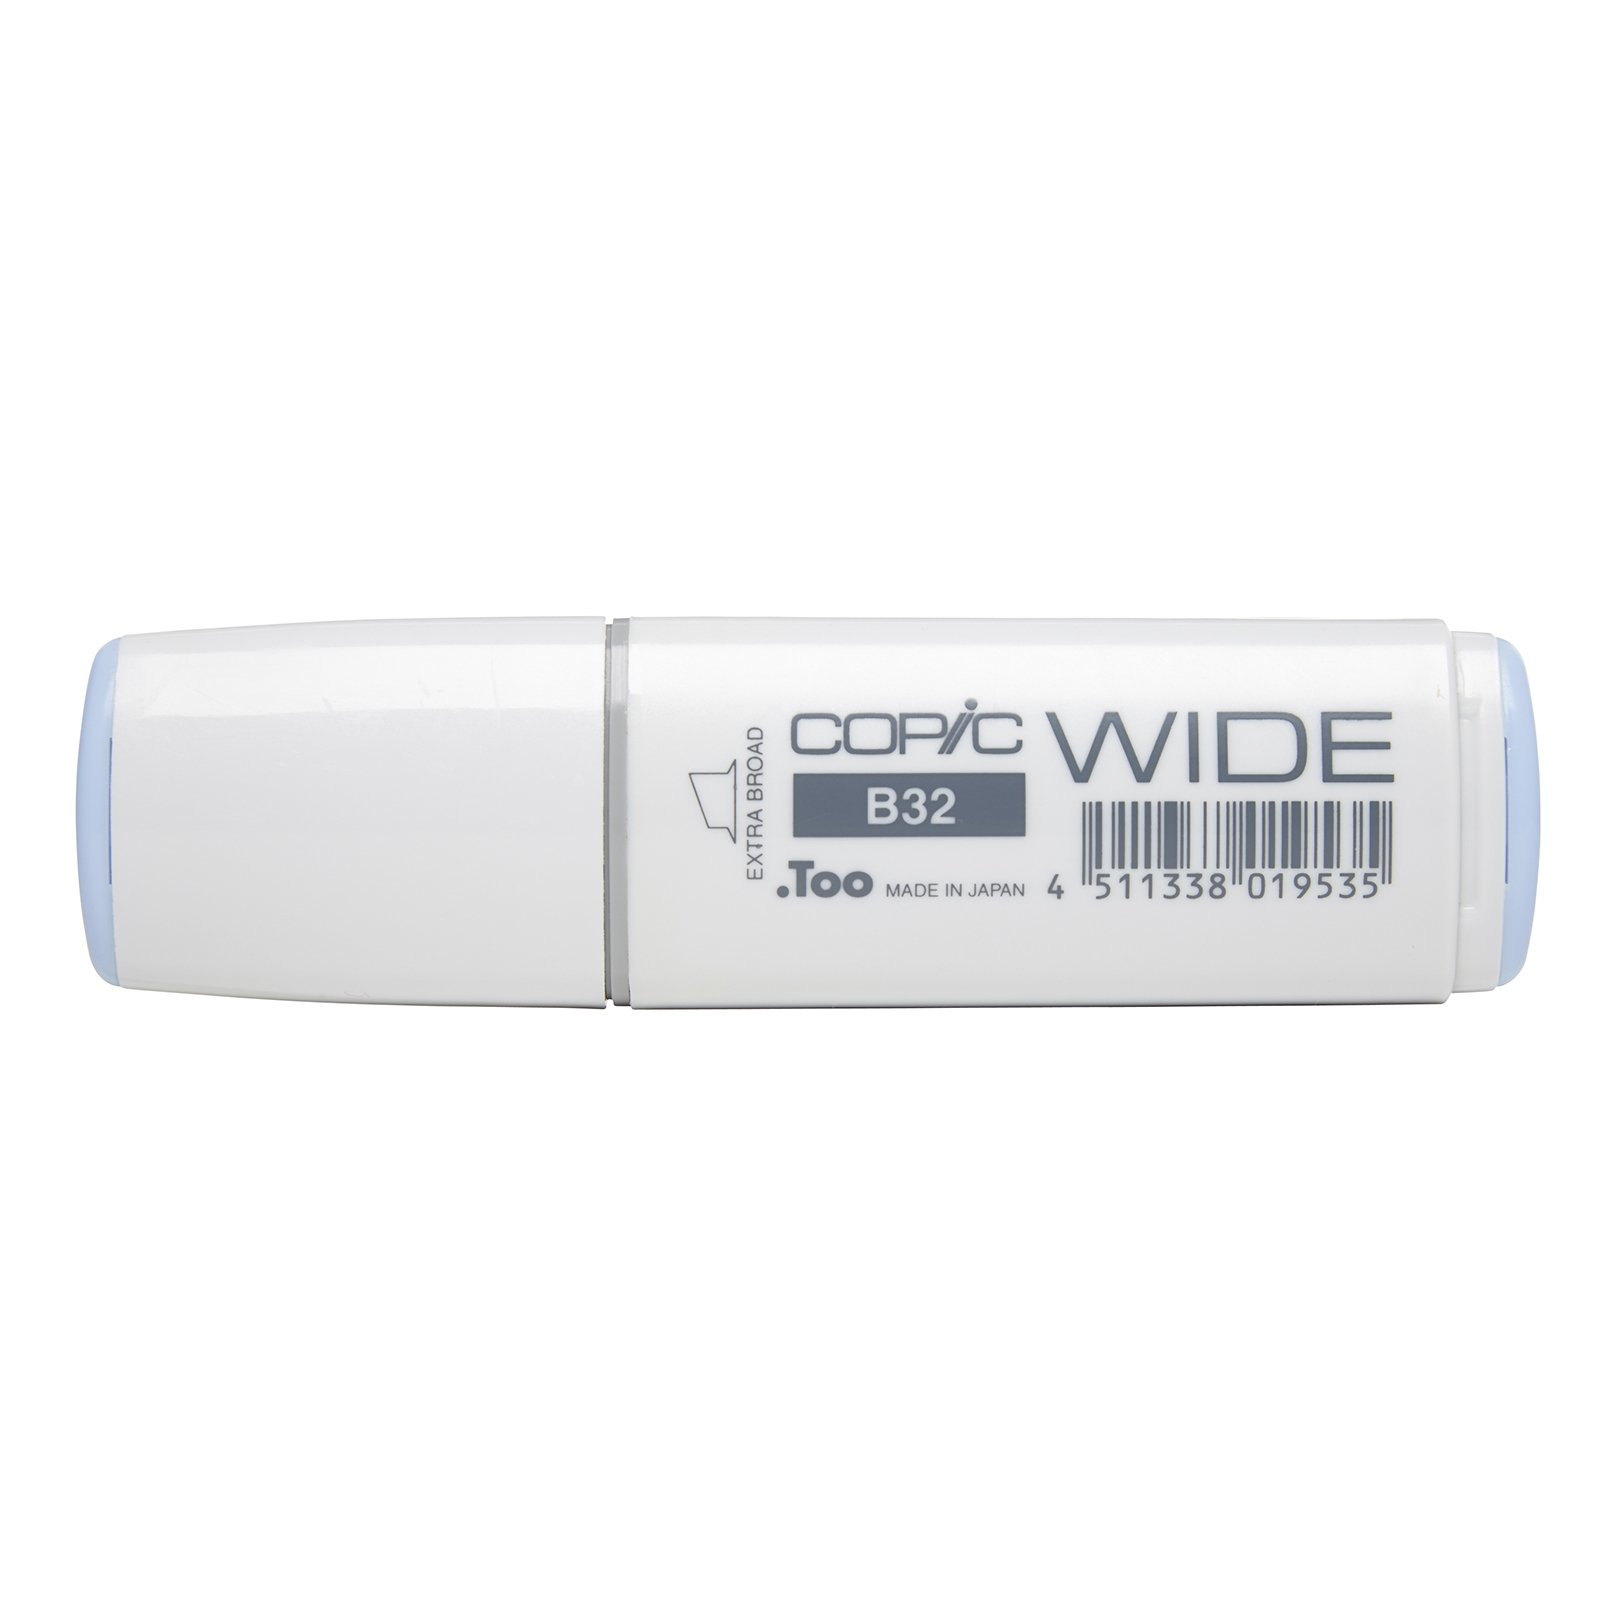 Copic Marker with Replaceable Nib, B32 Wide, Pale Blue